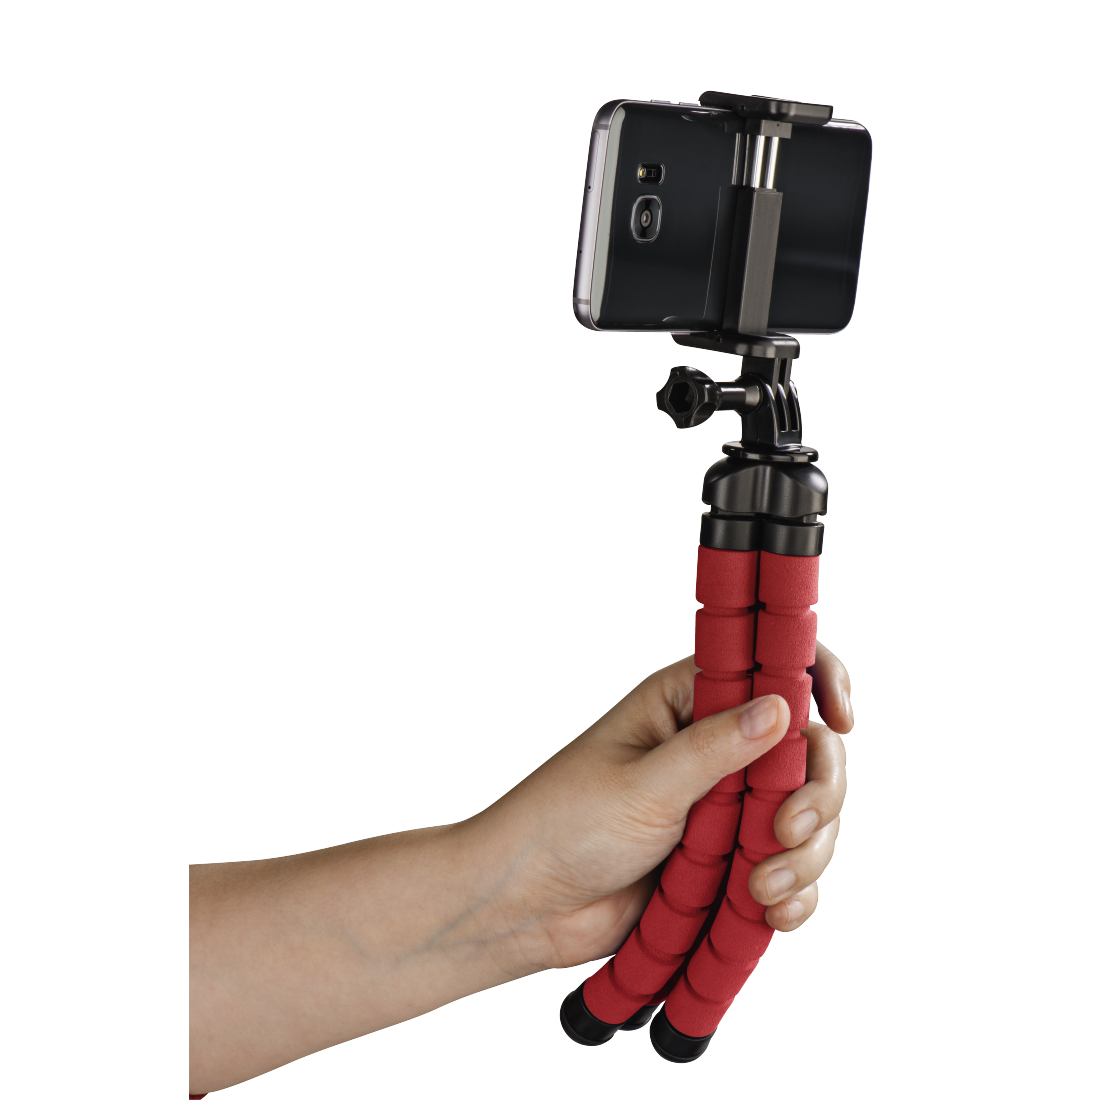 abx5 High-Res Image 5 - Hama, Flex Tripod for Smartphone and GoPro, 26 cm, red